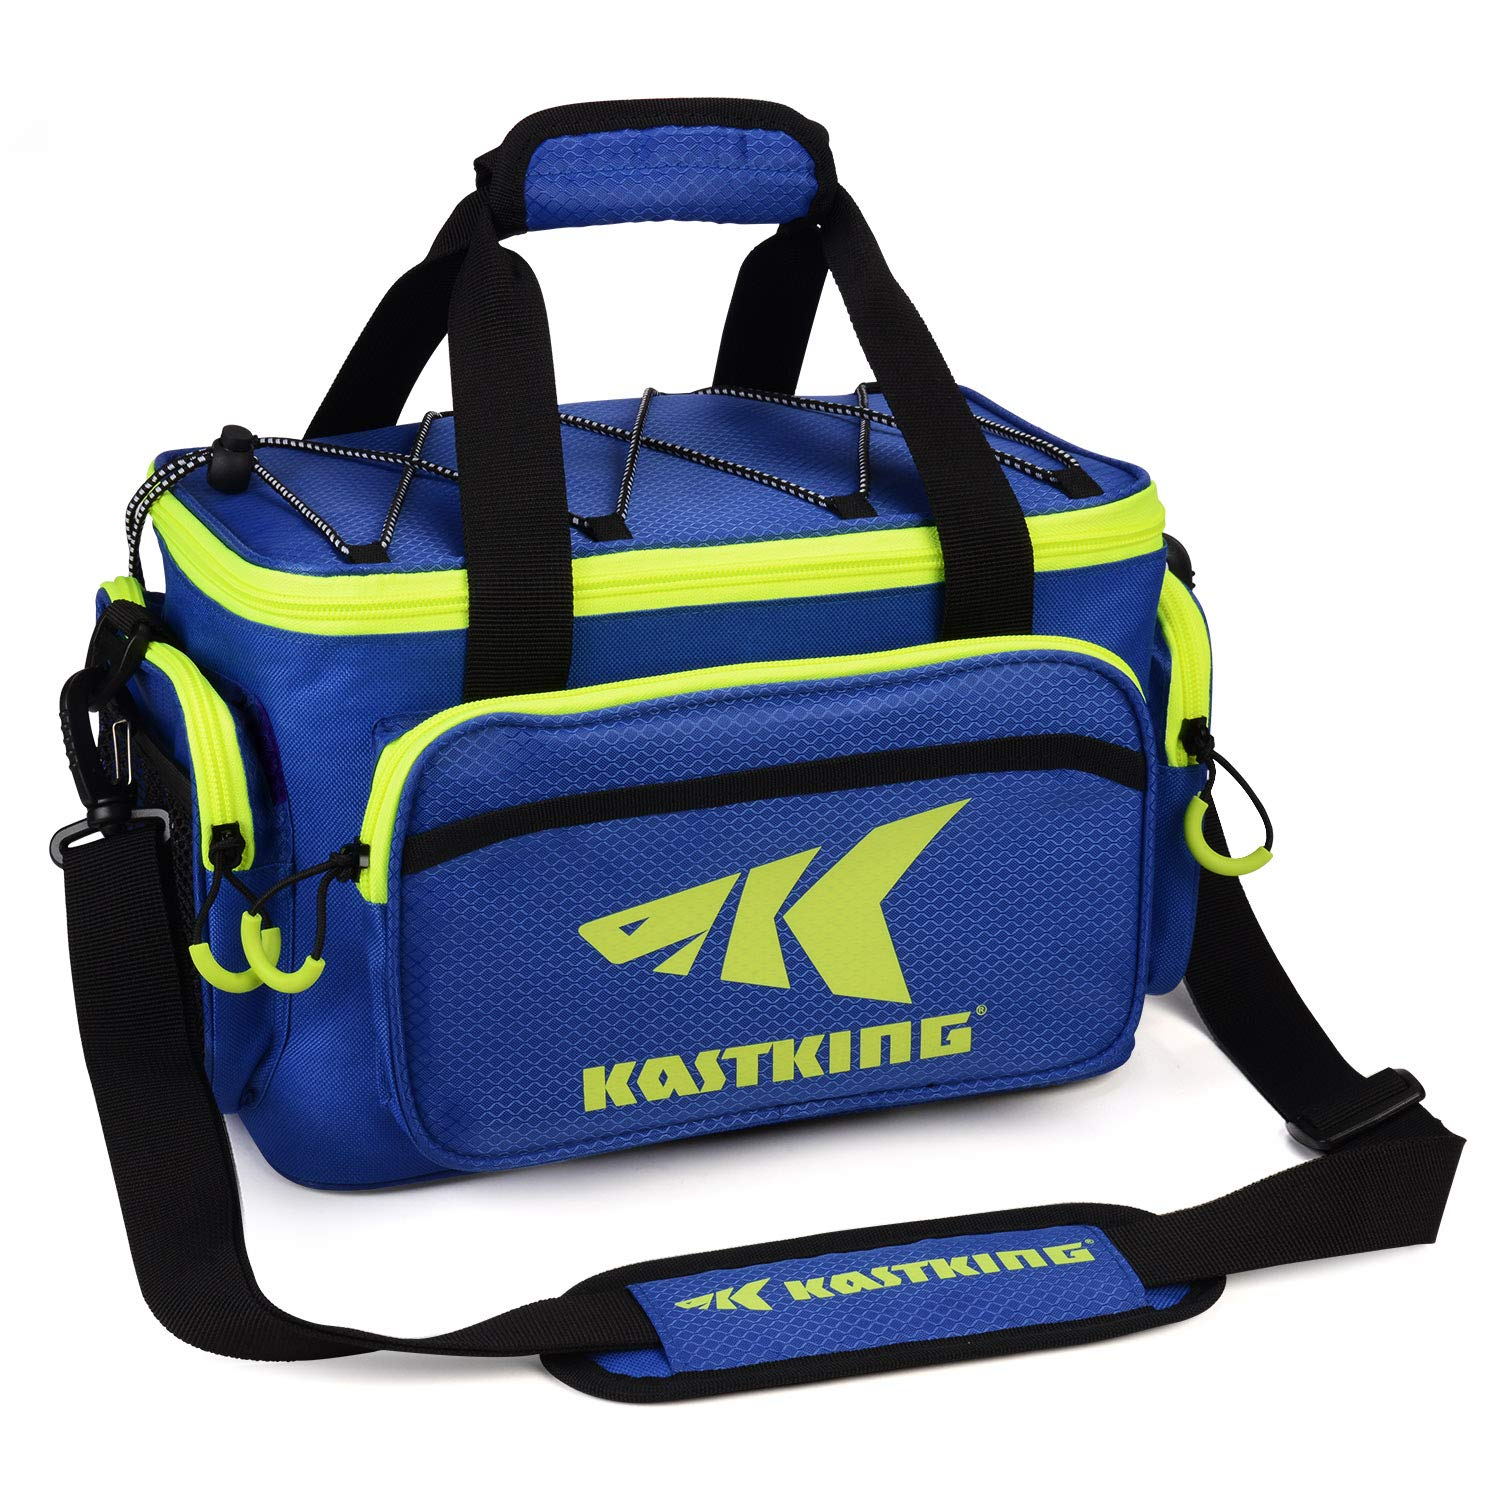 KastKing Fishing Tackle Bags - Fishing Bags for Saltwater or Freshwater Fishing - Rip-Stop PE - Padded Shoulder Strap - Plier Storage